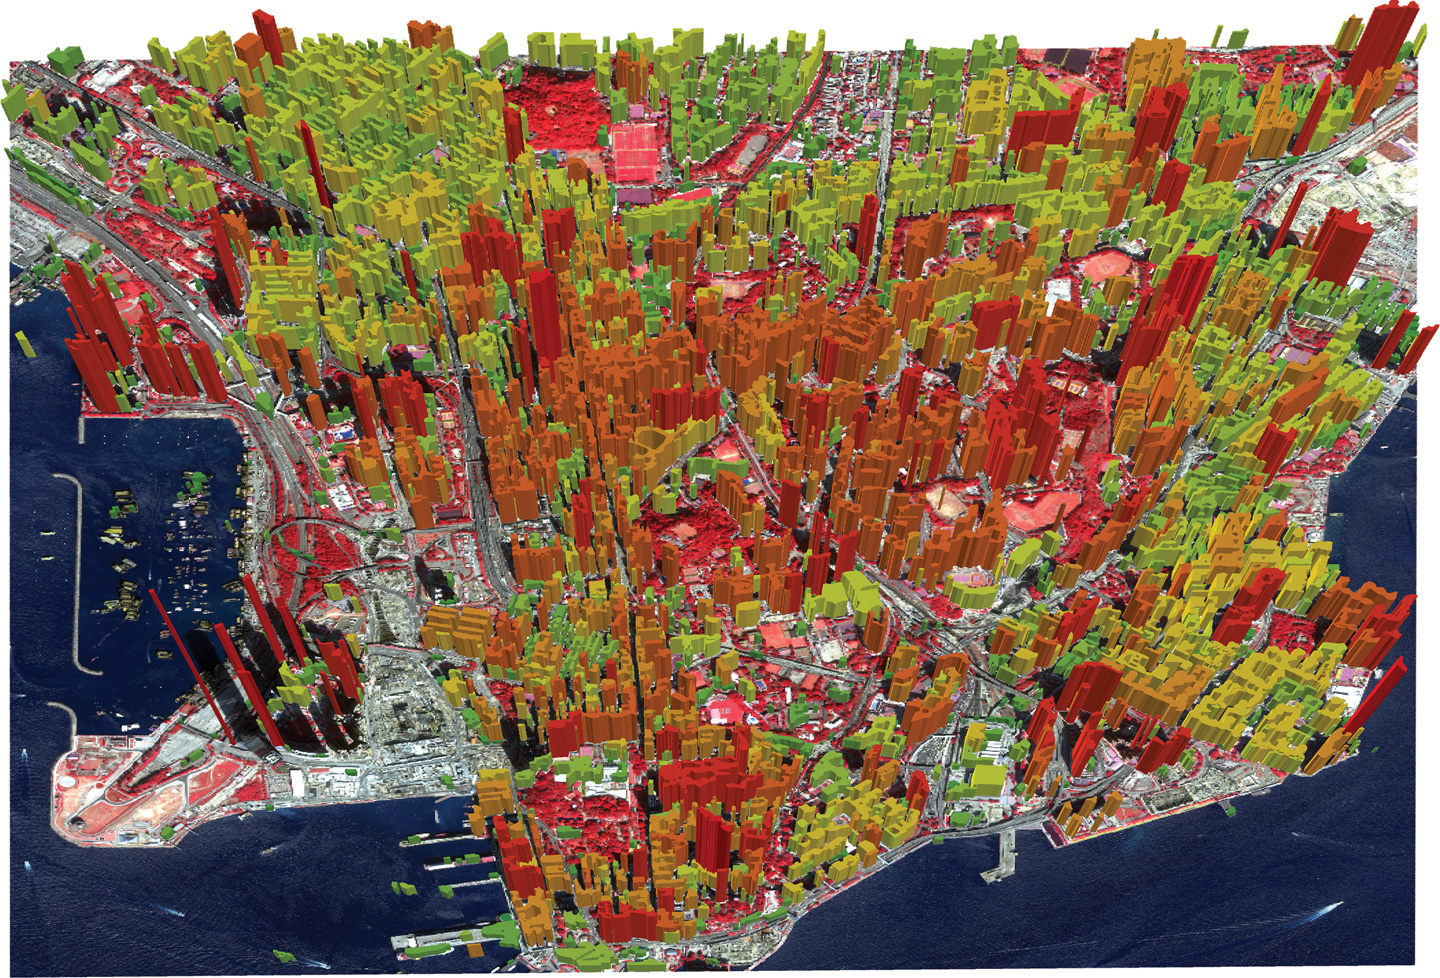 In the Kowloon 3D map produced by CUHK, the height of buildings is indicated by colours. The buildings in red are the tall ones